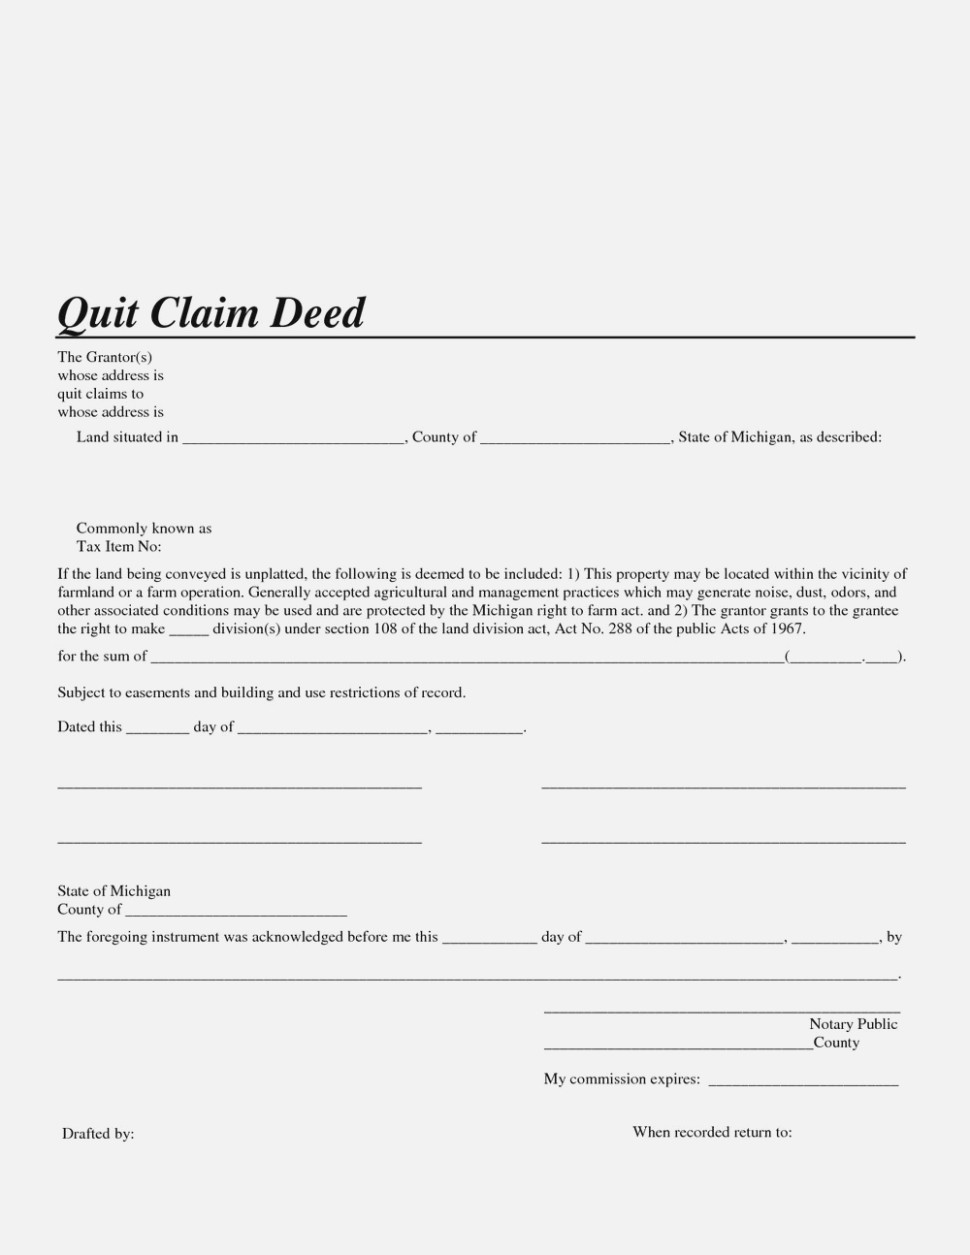 Free Wayne County Michigan Quit Claim Deed Form